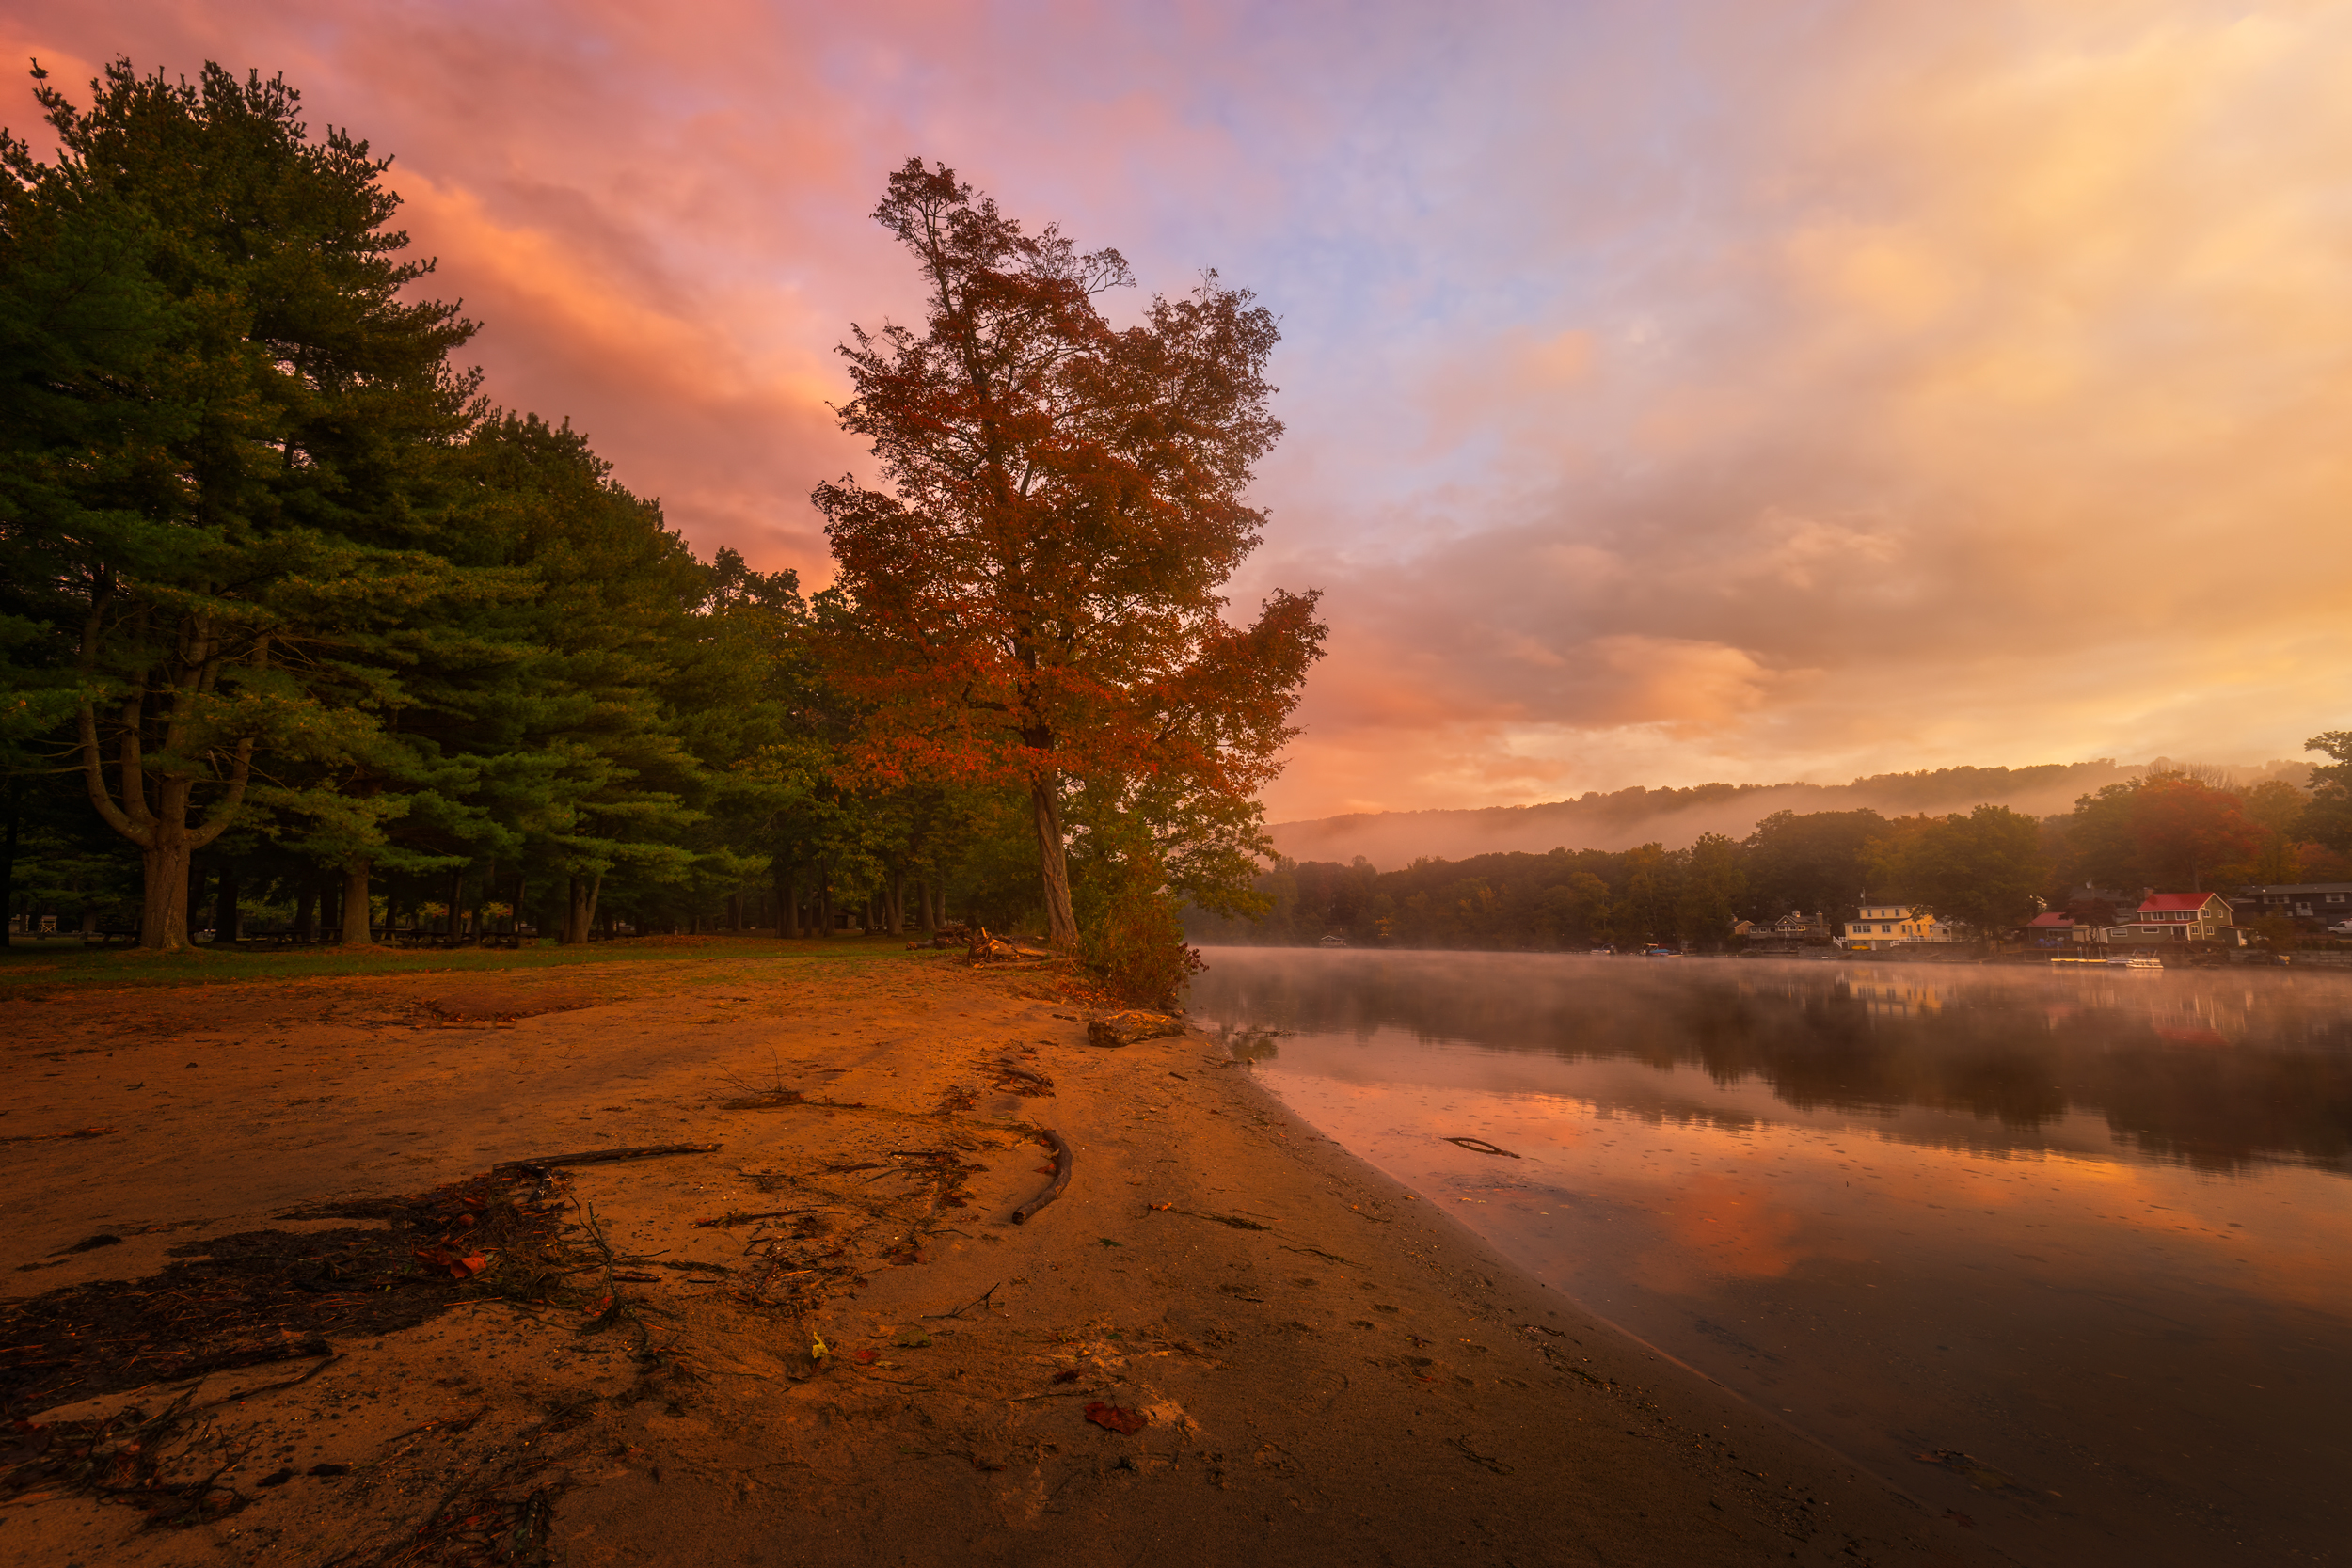 A beautiful Autumn morning at Indian Well State Park in Shelton, Connecticut, USA.